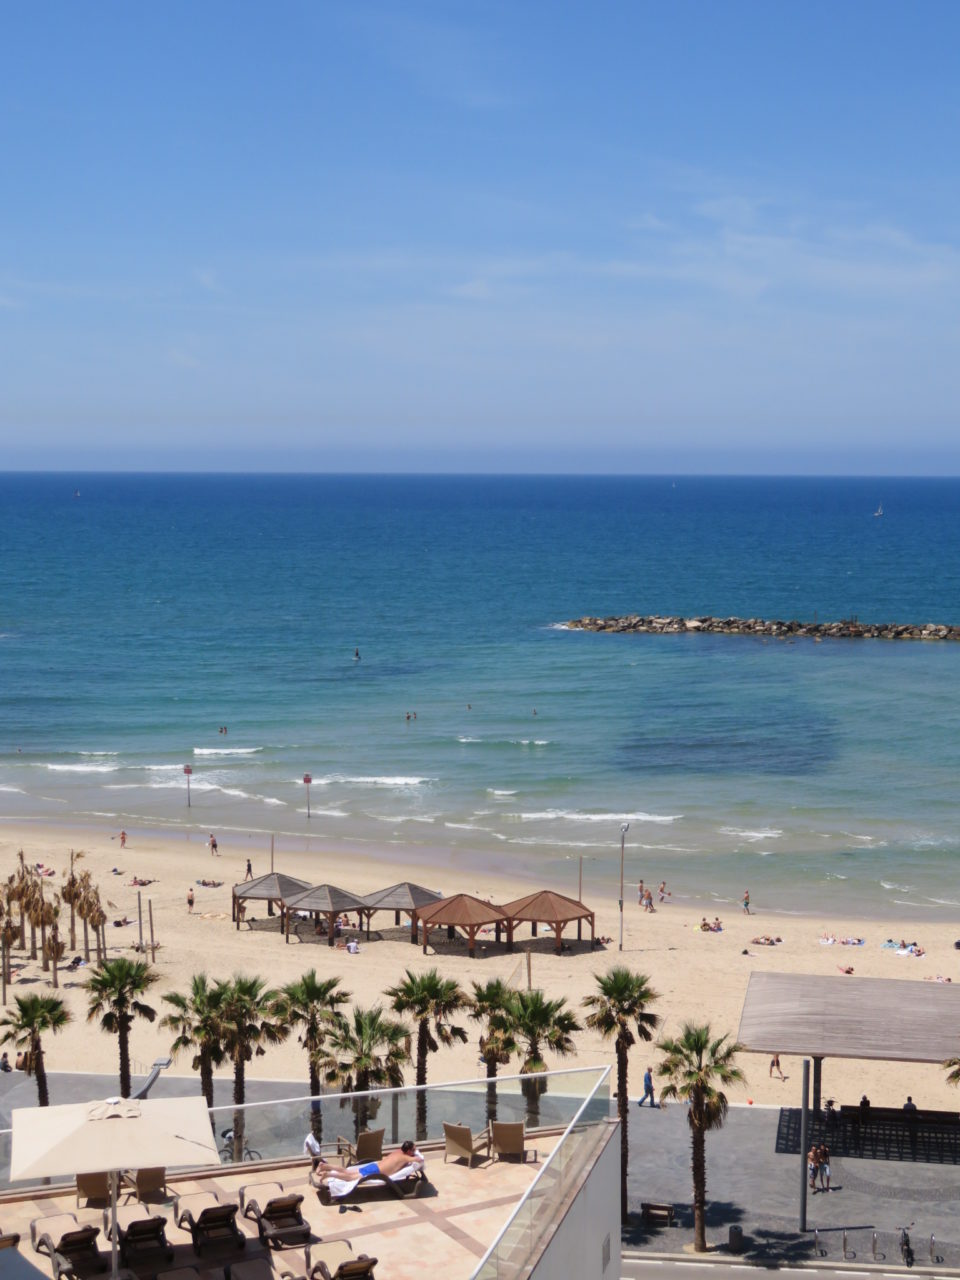 Vacationing in Israel ... The Tel Aviv Beach viewed from the Dan Tel Aviv Hotel